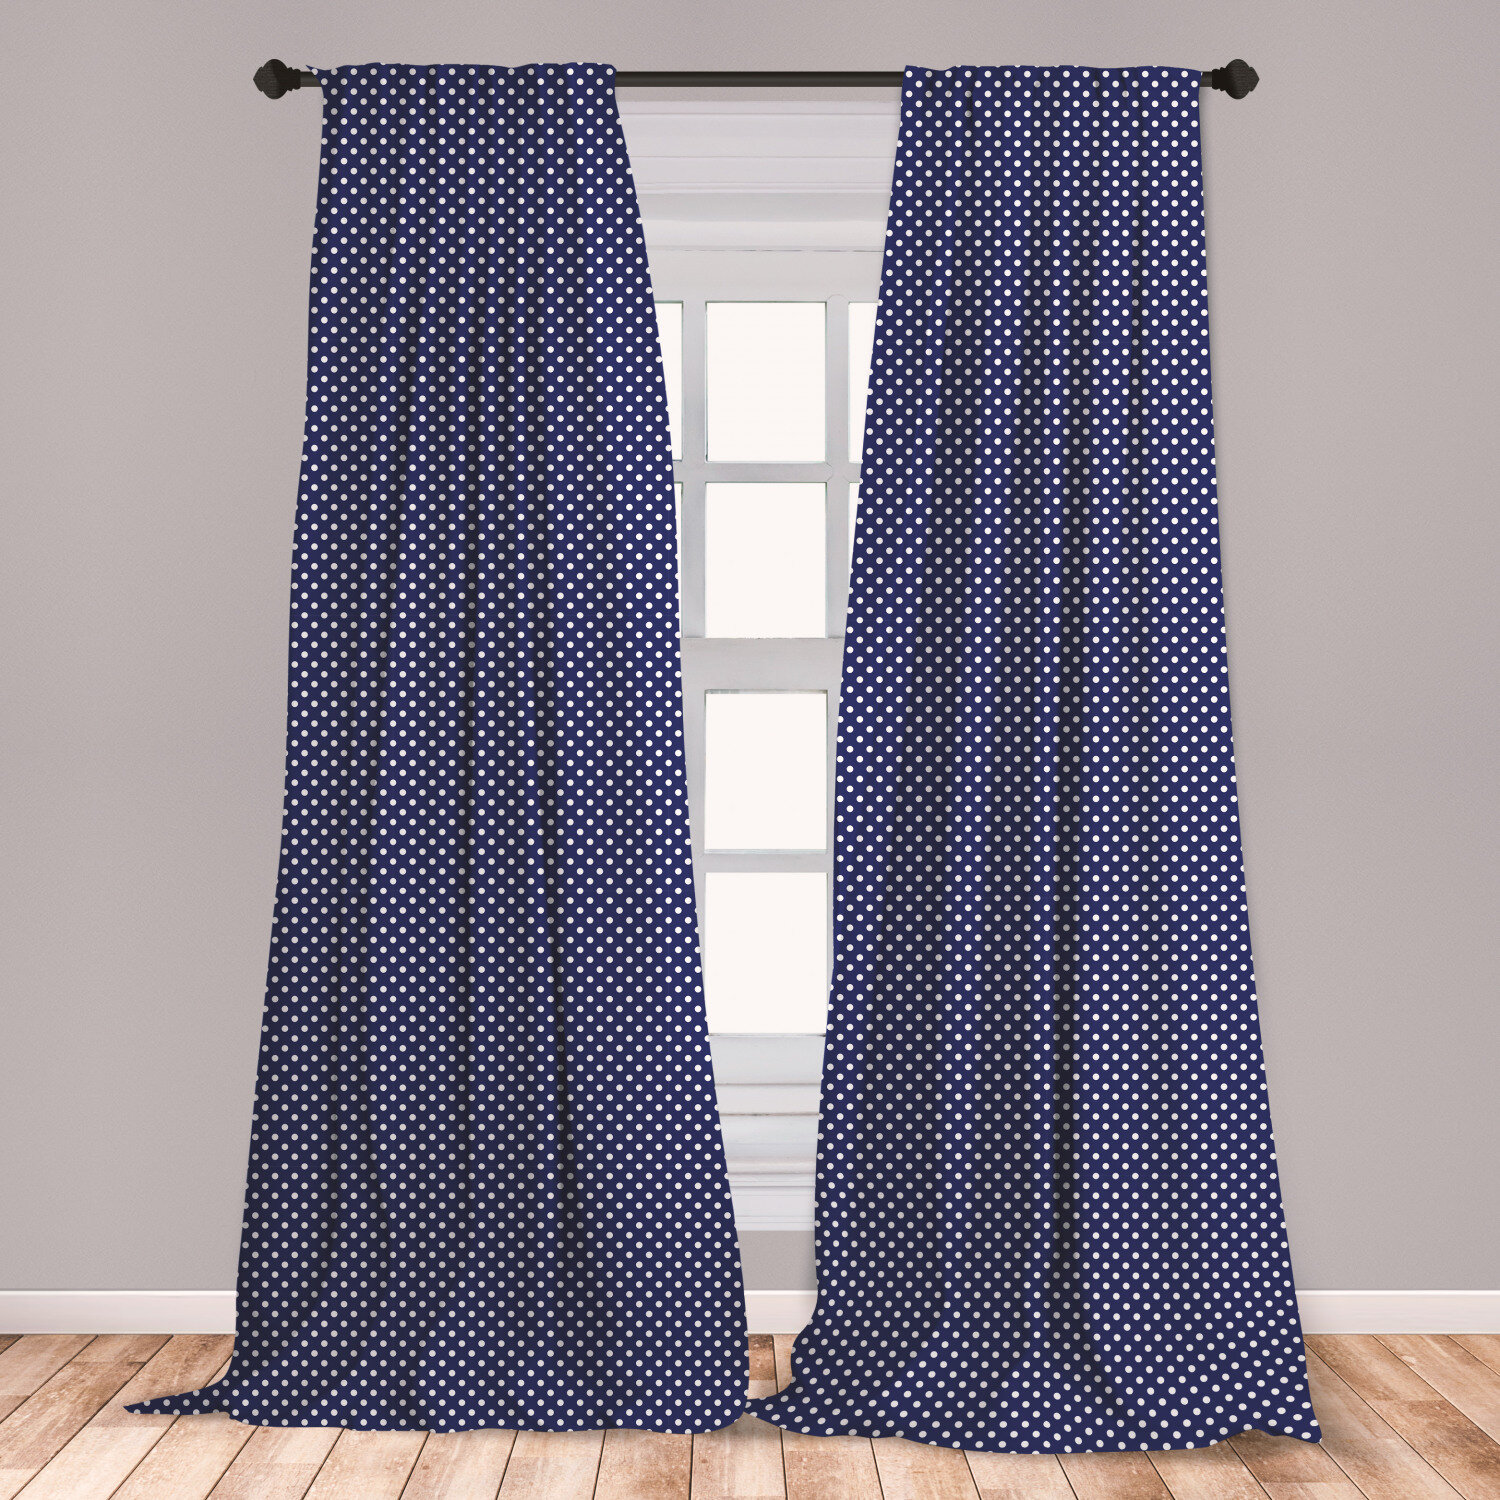 Ambesonne Navy Blue Curtains, Old Fashioned Polka Dots Pattern In Marine on nautical bedroom crafts, nautical room ideas, nautical bedroom wallpaper, rustic wood headboard bedroom ideas, nautical bedroom diy ideas, nautical bedroom designs, nautical guest bedroom ideas, nautical curtains ideas, nautical bedroom art, nautical interior ideas, nautical color ideas, nautical bedroom color, nautical bedroom accessories, nautical bedroom wall ideas, nautical themed bedroom ideas, nautical bedroom for teen girls, nautical master bedroom ideas, nautical bathroom ideas, nautical bedroom curtains, luxury white bedroom ideas,